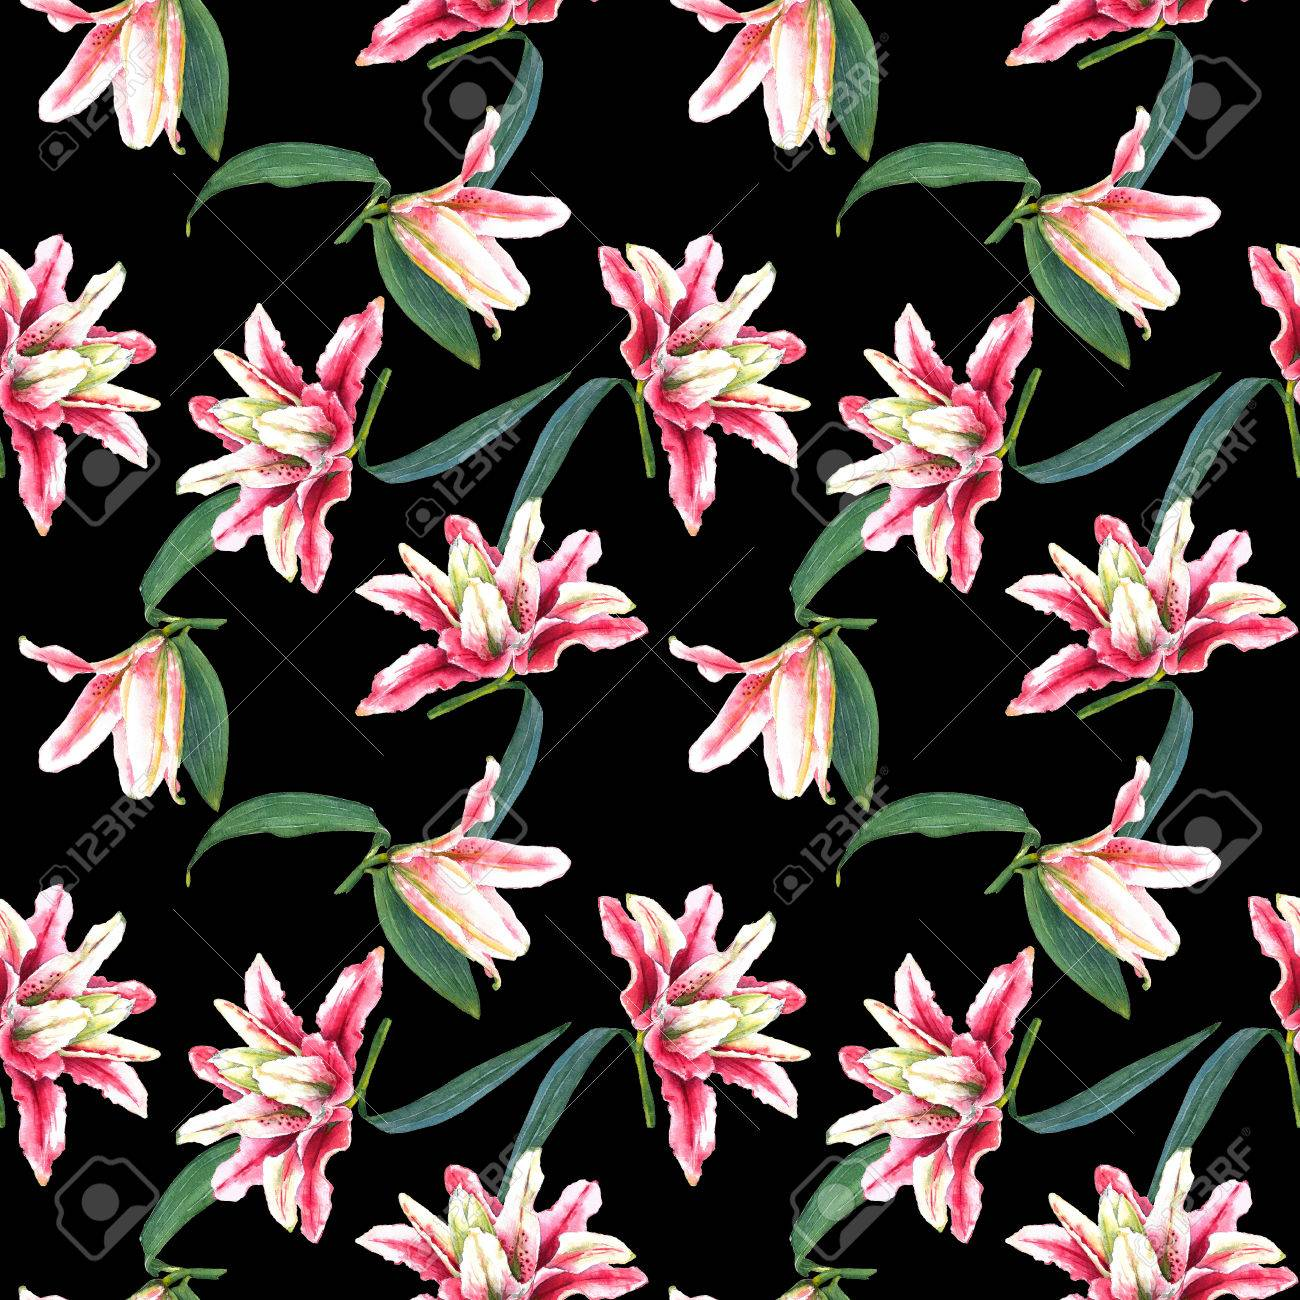 Seamless Floral Pattern Of Double Bloom Tropical Pink Lilies